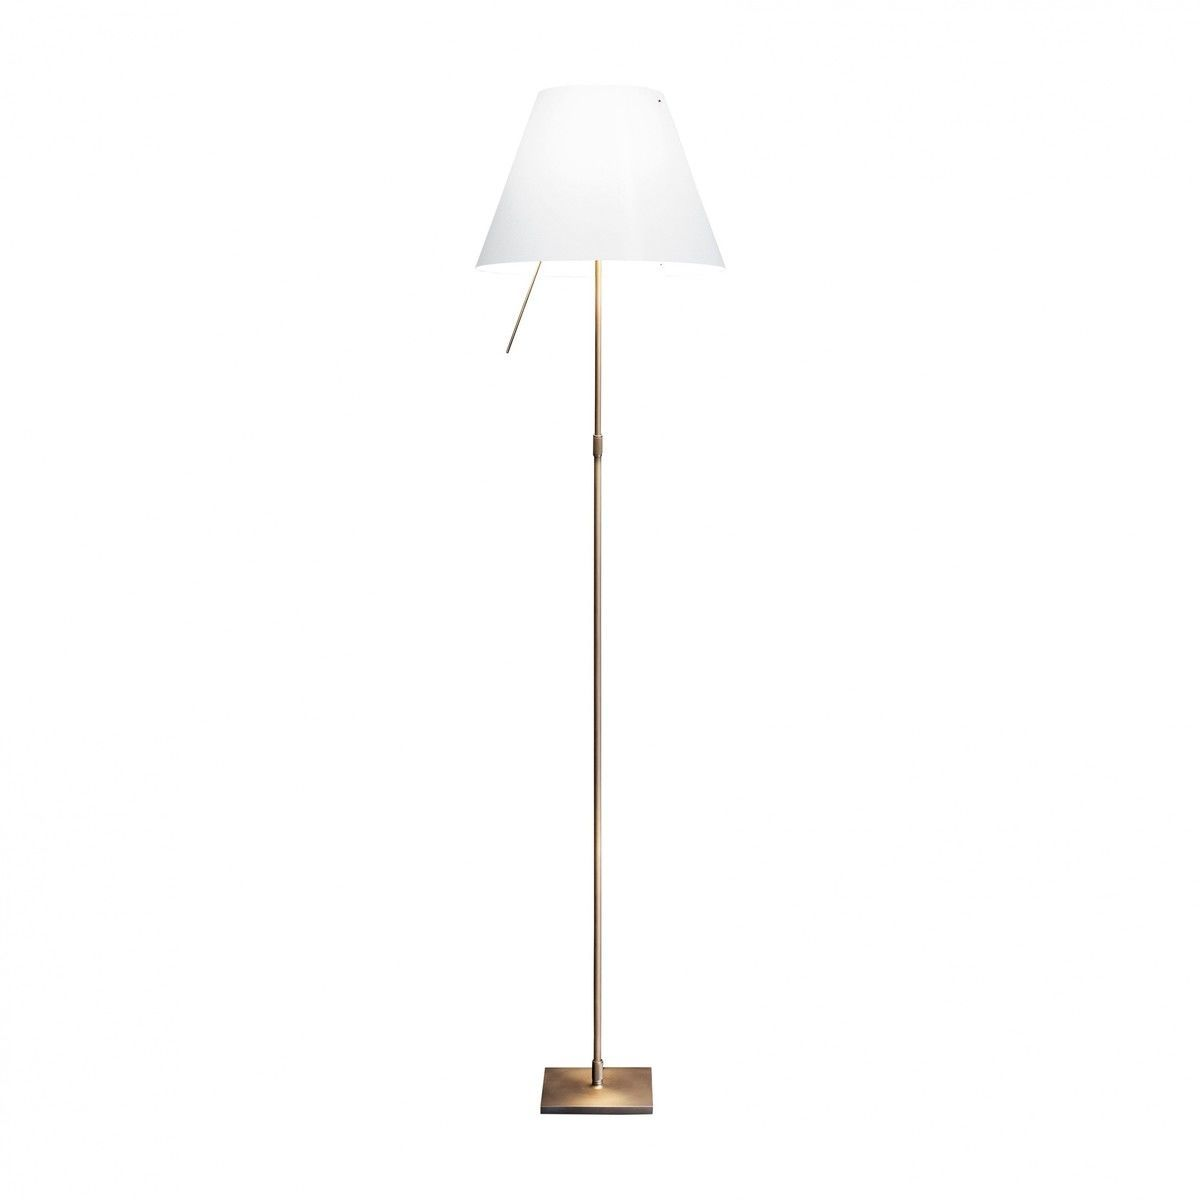 limited edition costanza bronze floor lamp  luceplan  - luceplan  costanza bronze floor lamp  whiteframe bronzewith telescope touch